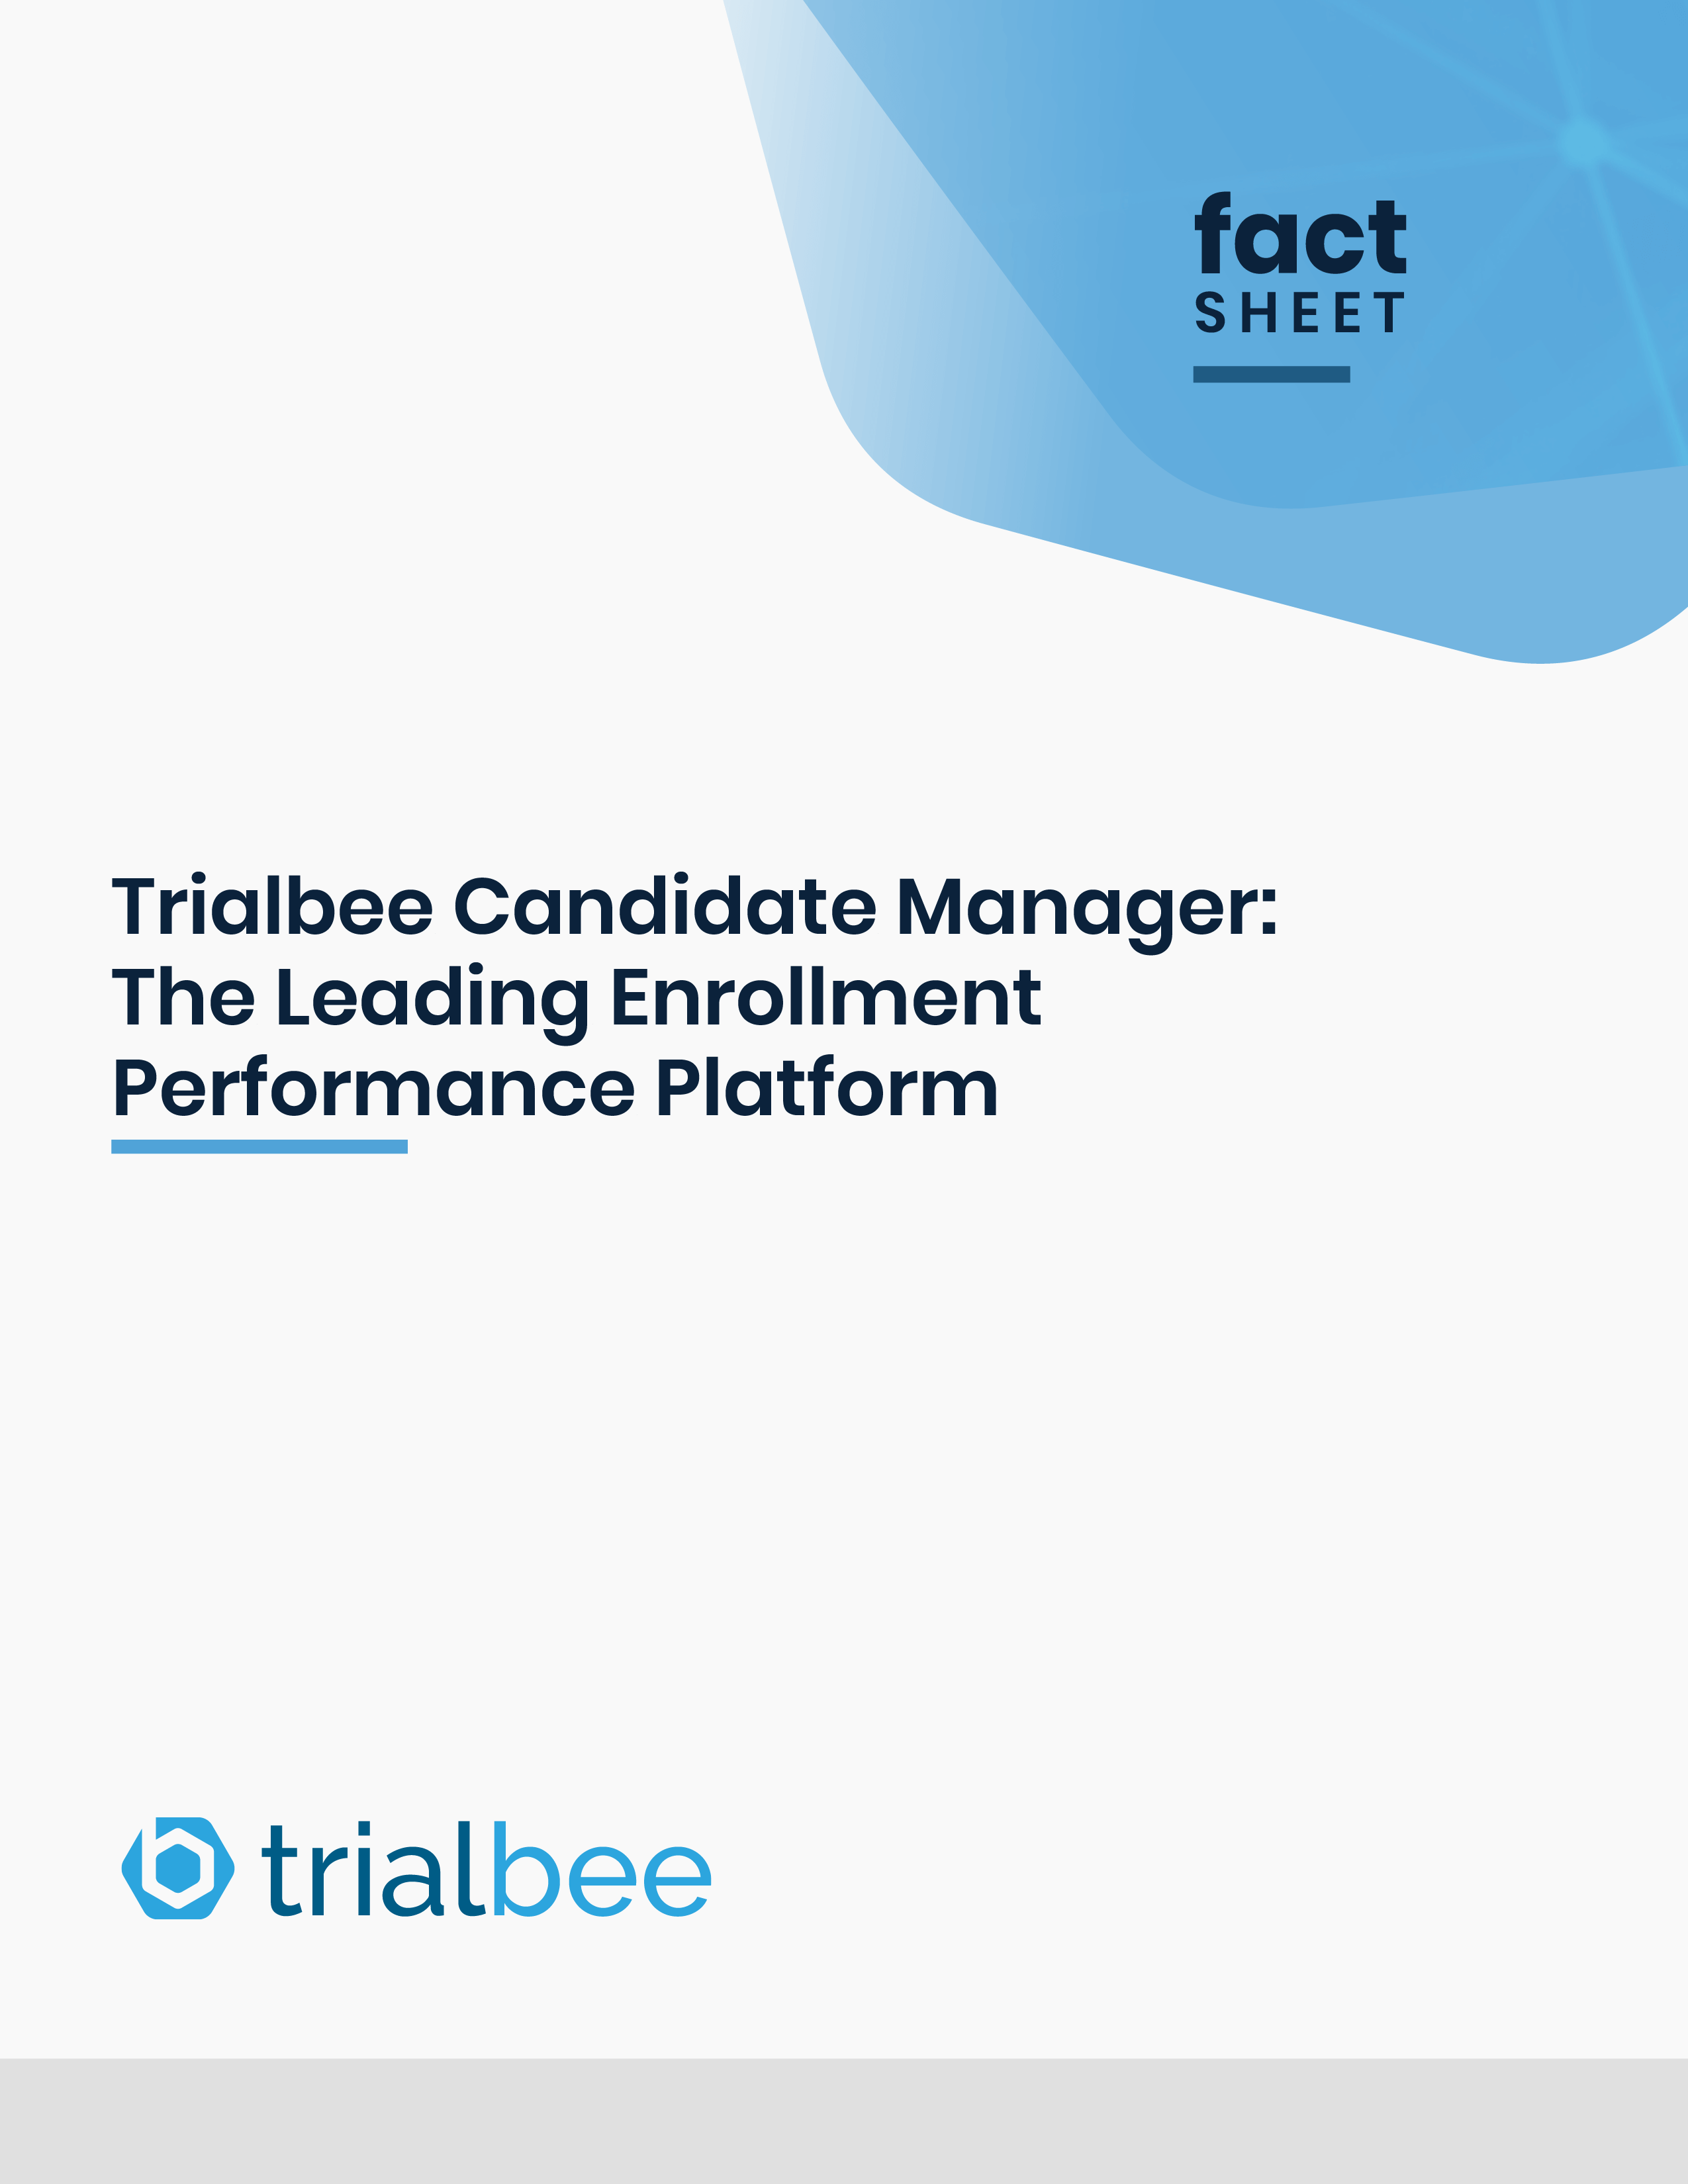 Trialbee Candidate Manager: The Leading Enrollment Performance Platform